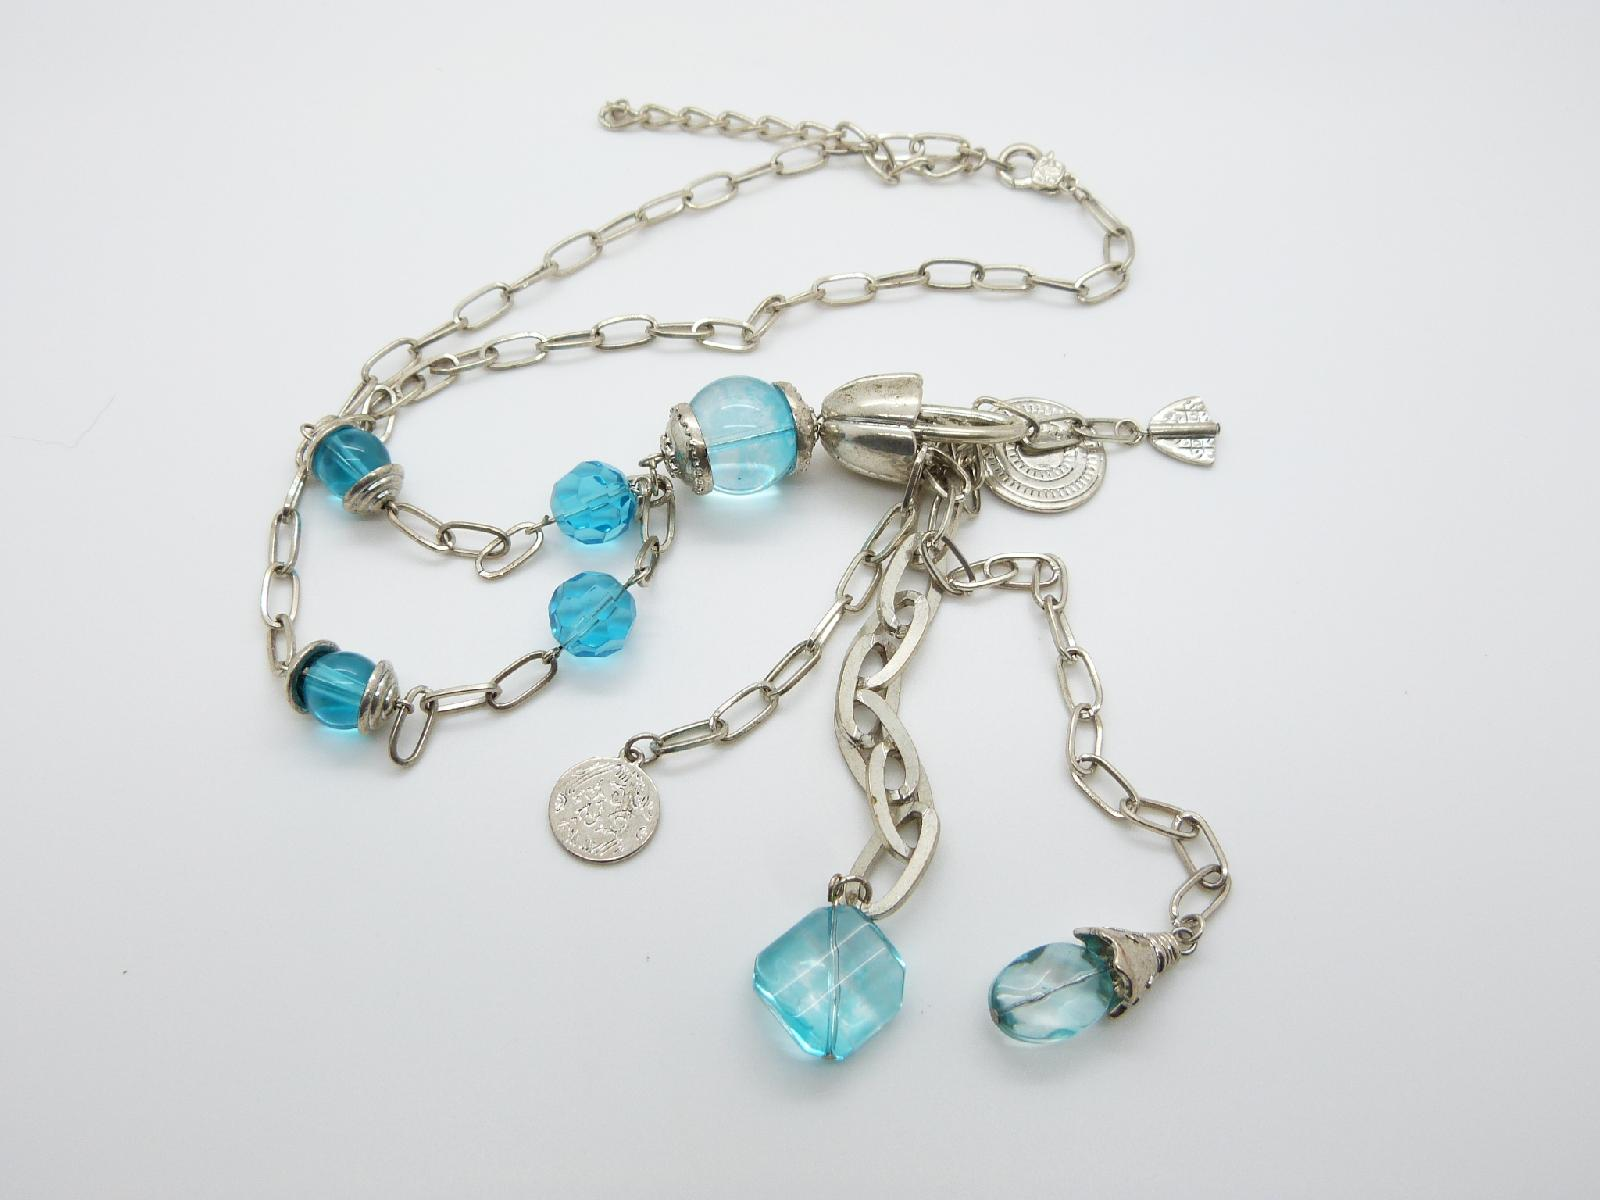 Long Silvertone Chain Link Necklace with Blue Glass Beads and Coin Charms